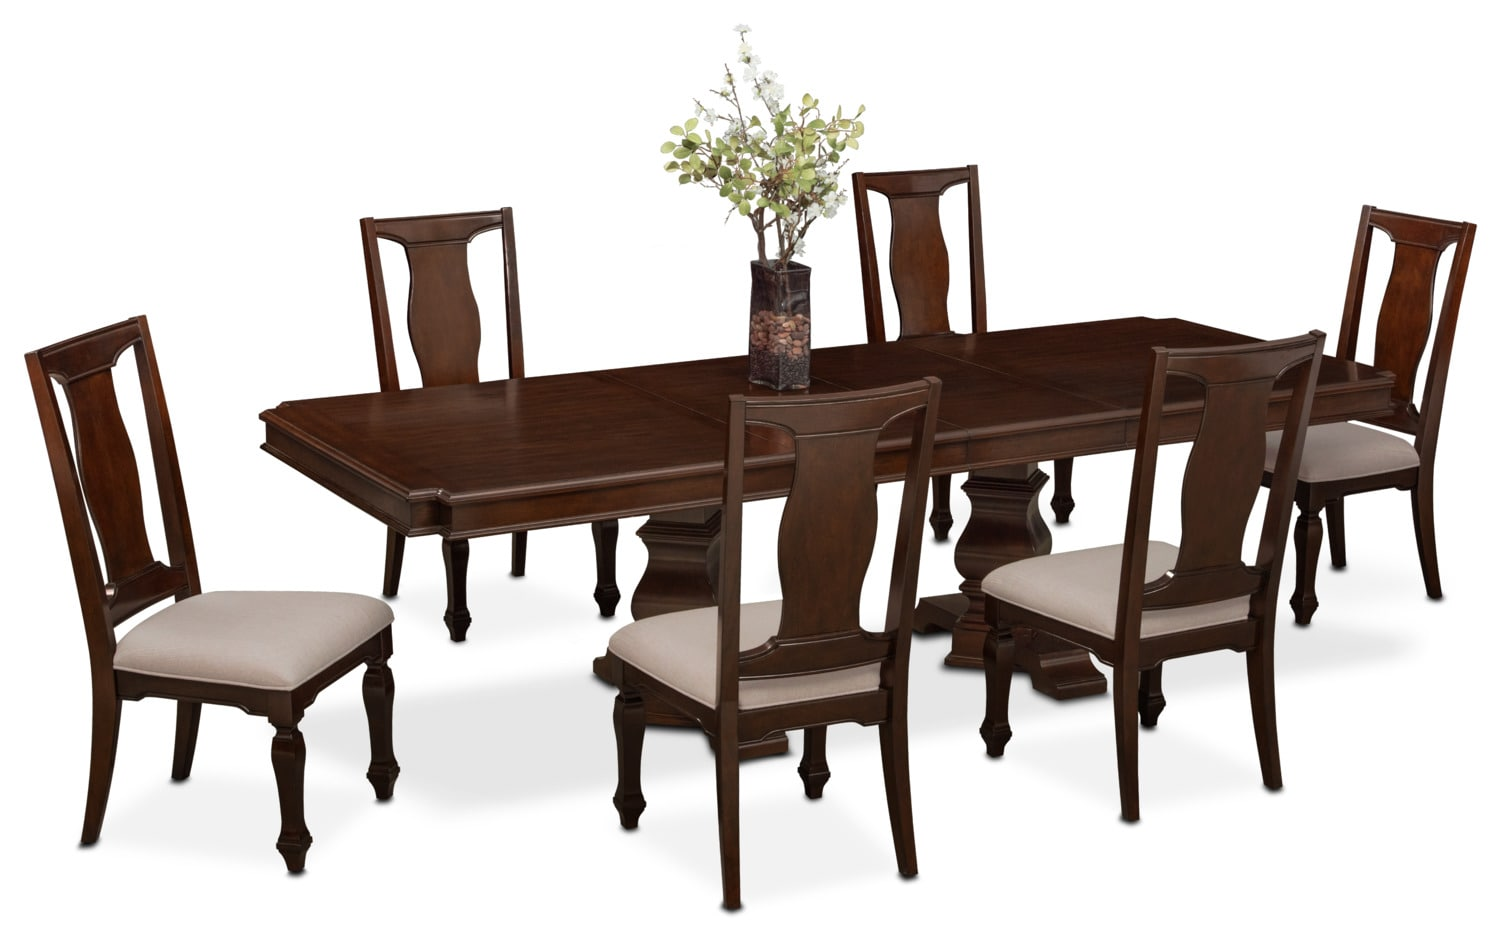 Shop Dining Room Furniture Sale Value City Furniture and Mattresses